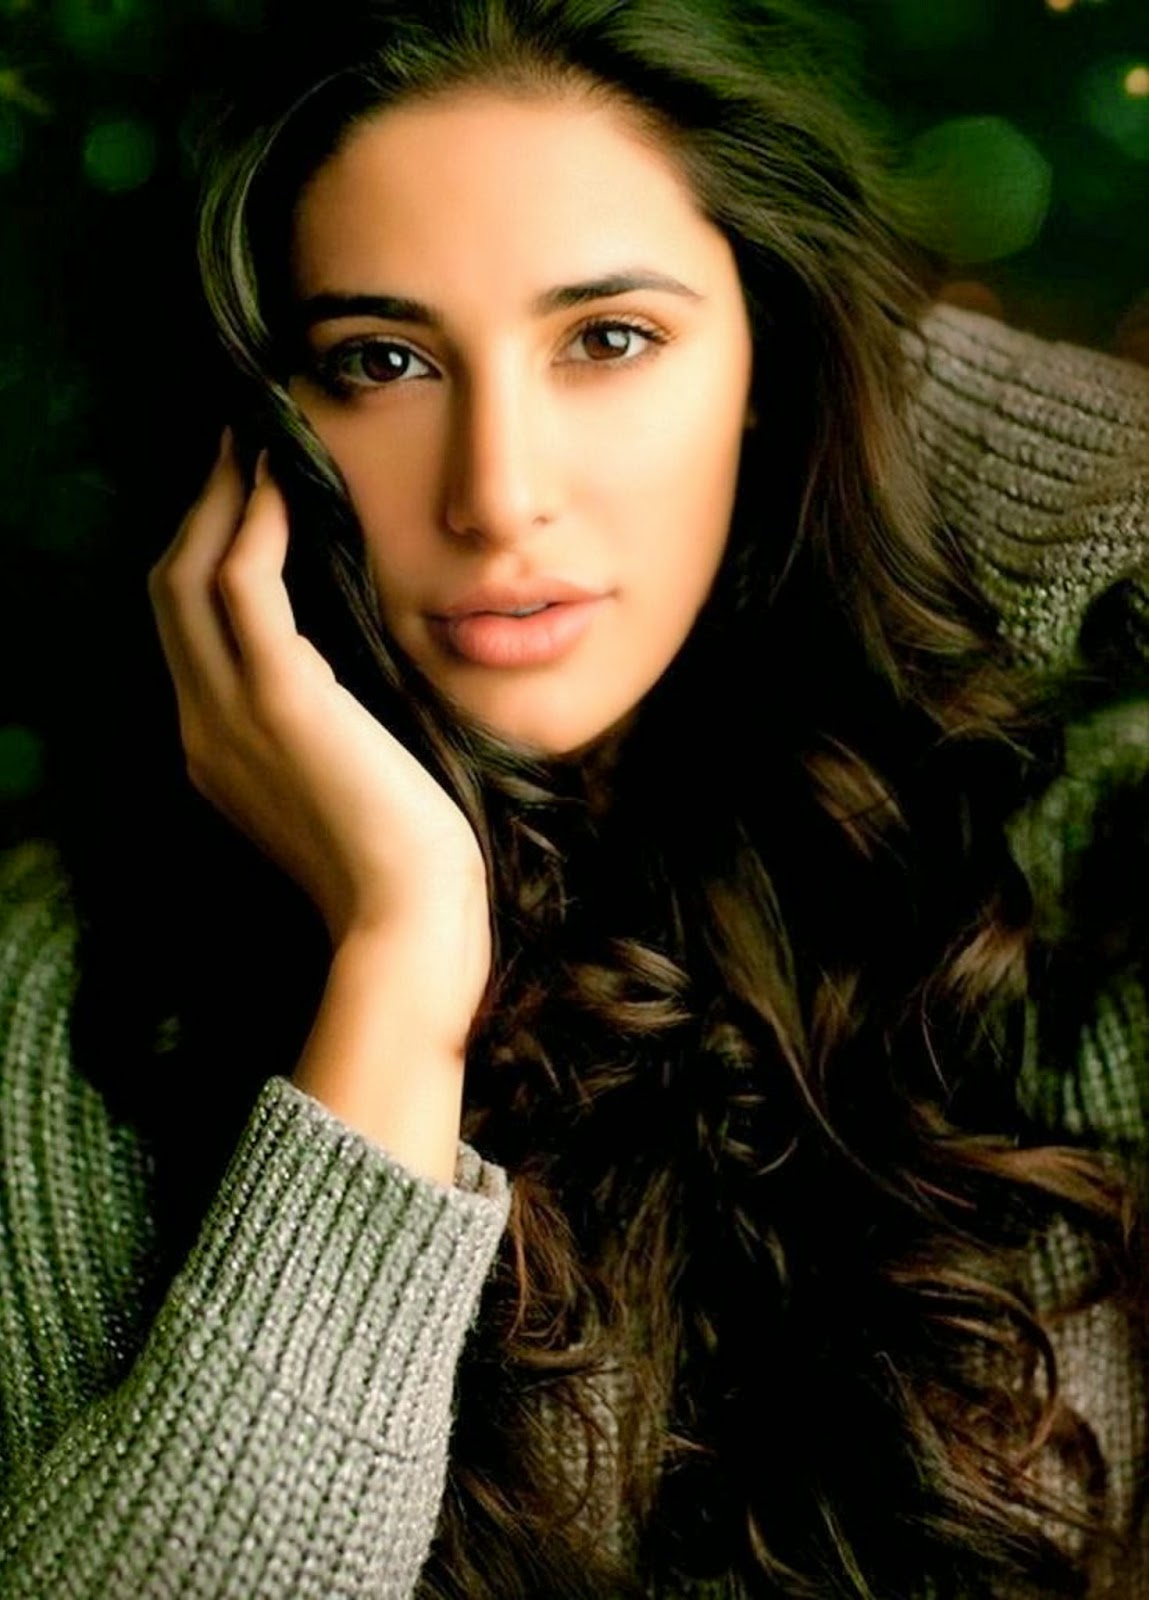 Nargis Fakhri Wallpapers Free Download